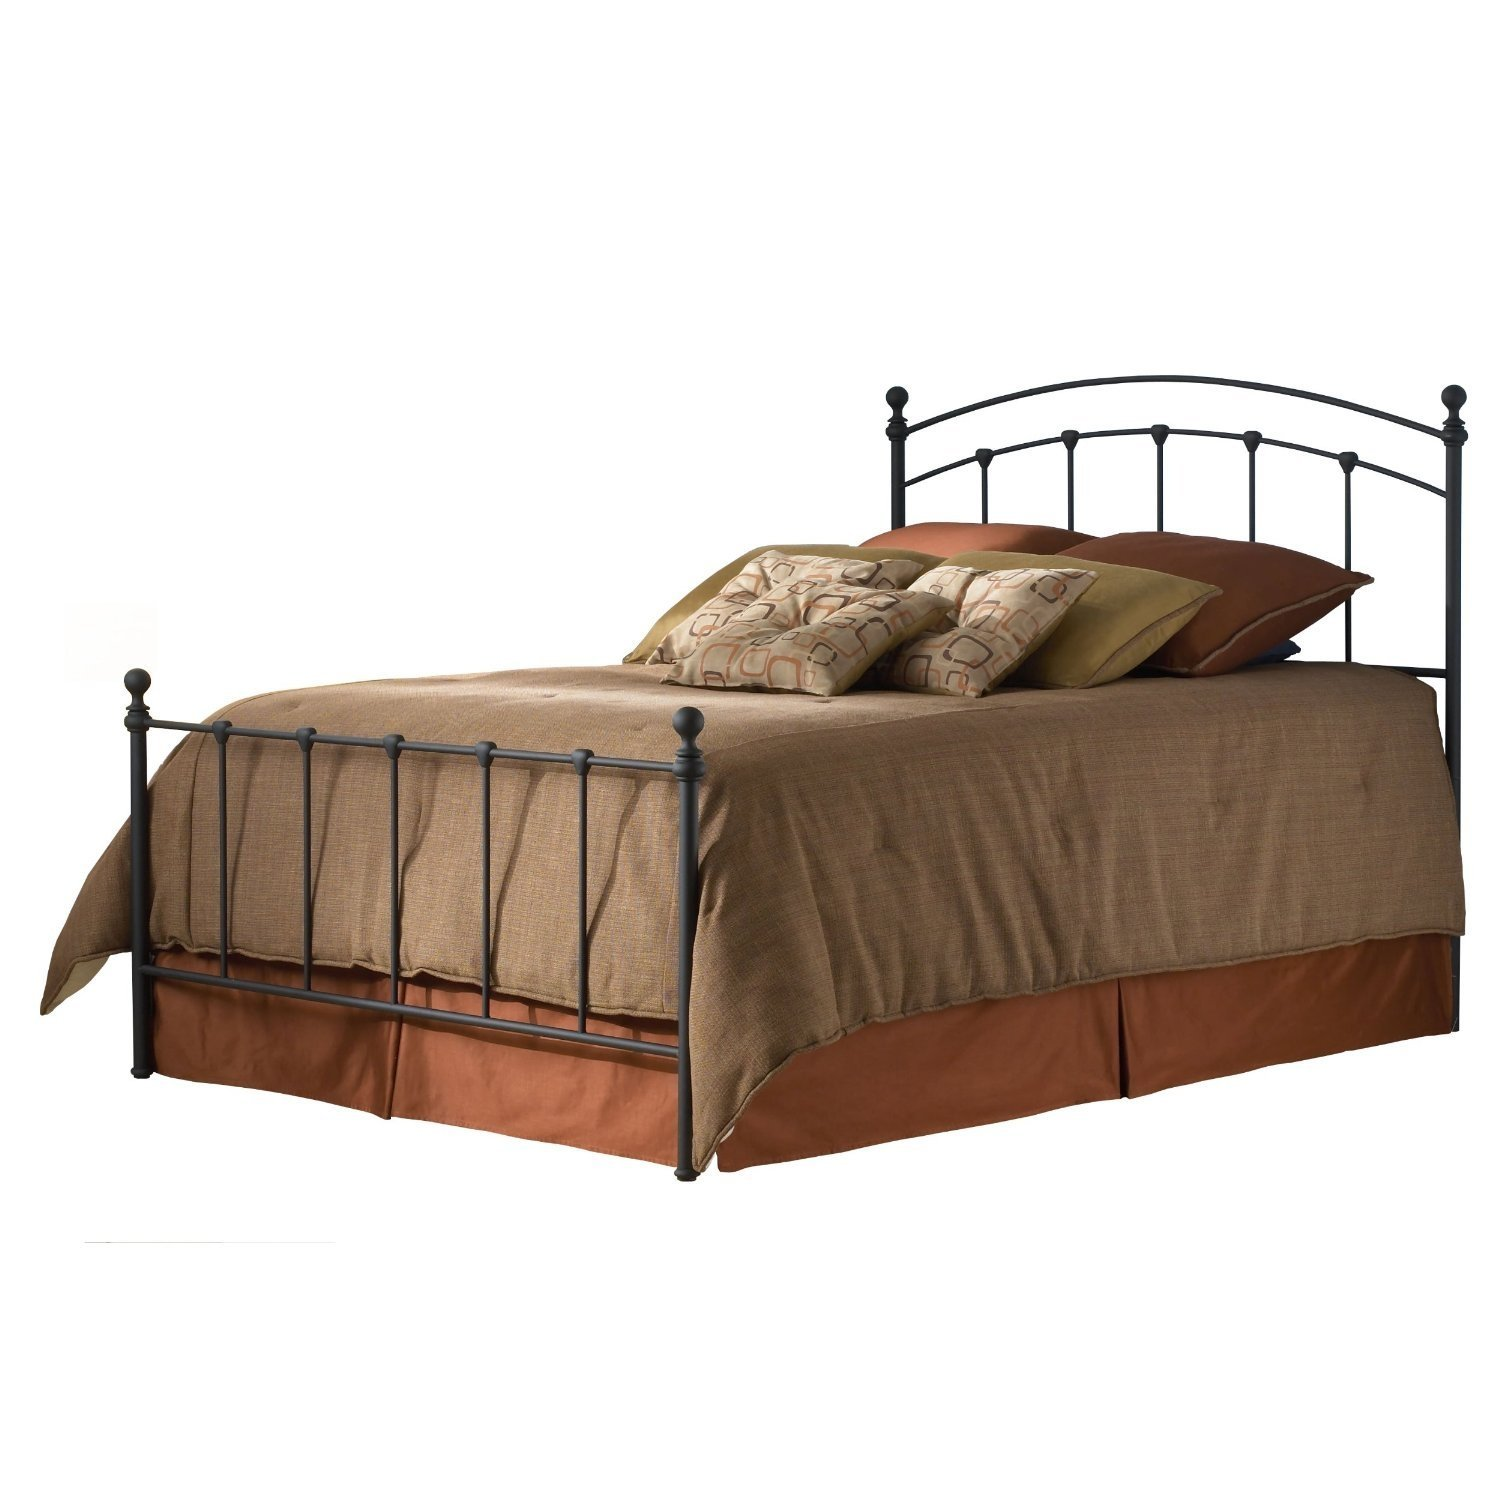 Queen size Metal Bed with Headboard and Footboard in Matte